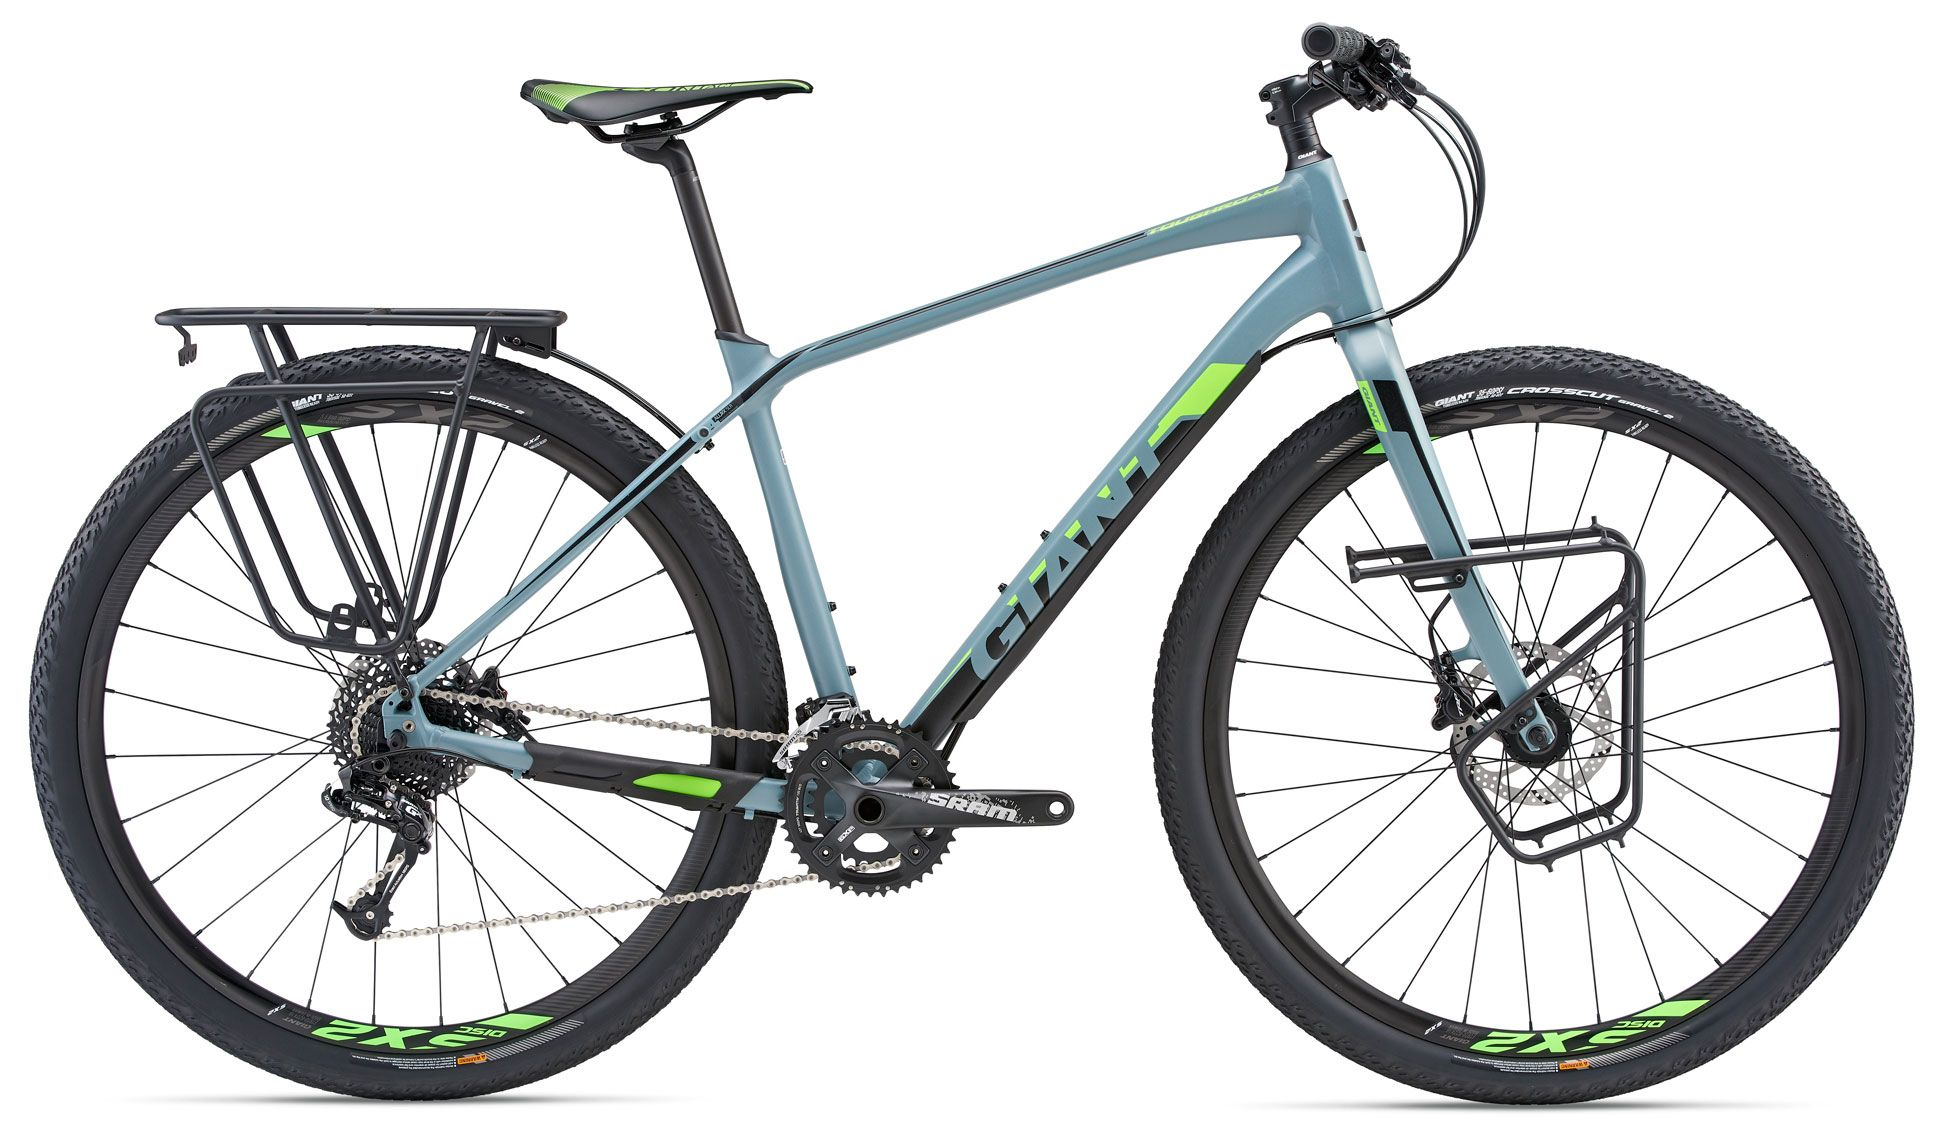 Велосипед Giant ToughRoad SLR 1 2018 велосипед giant tcr composite 2 compact 2014